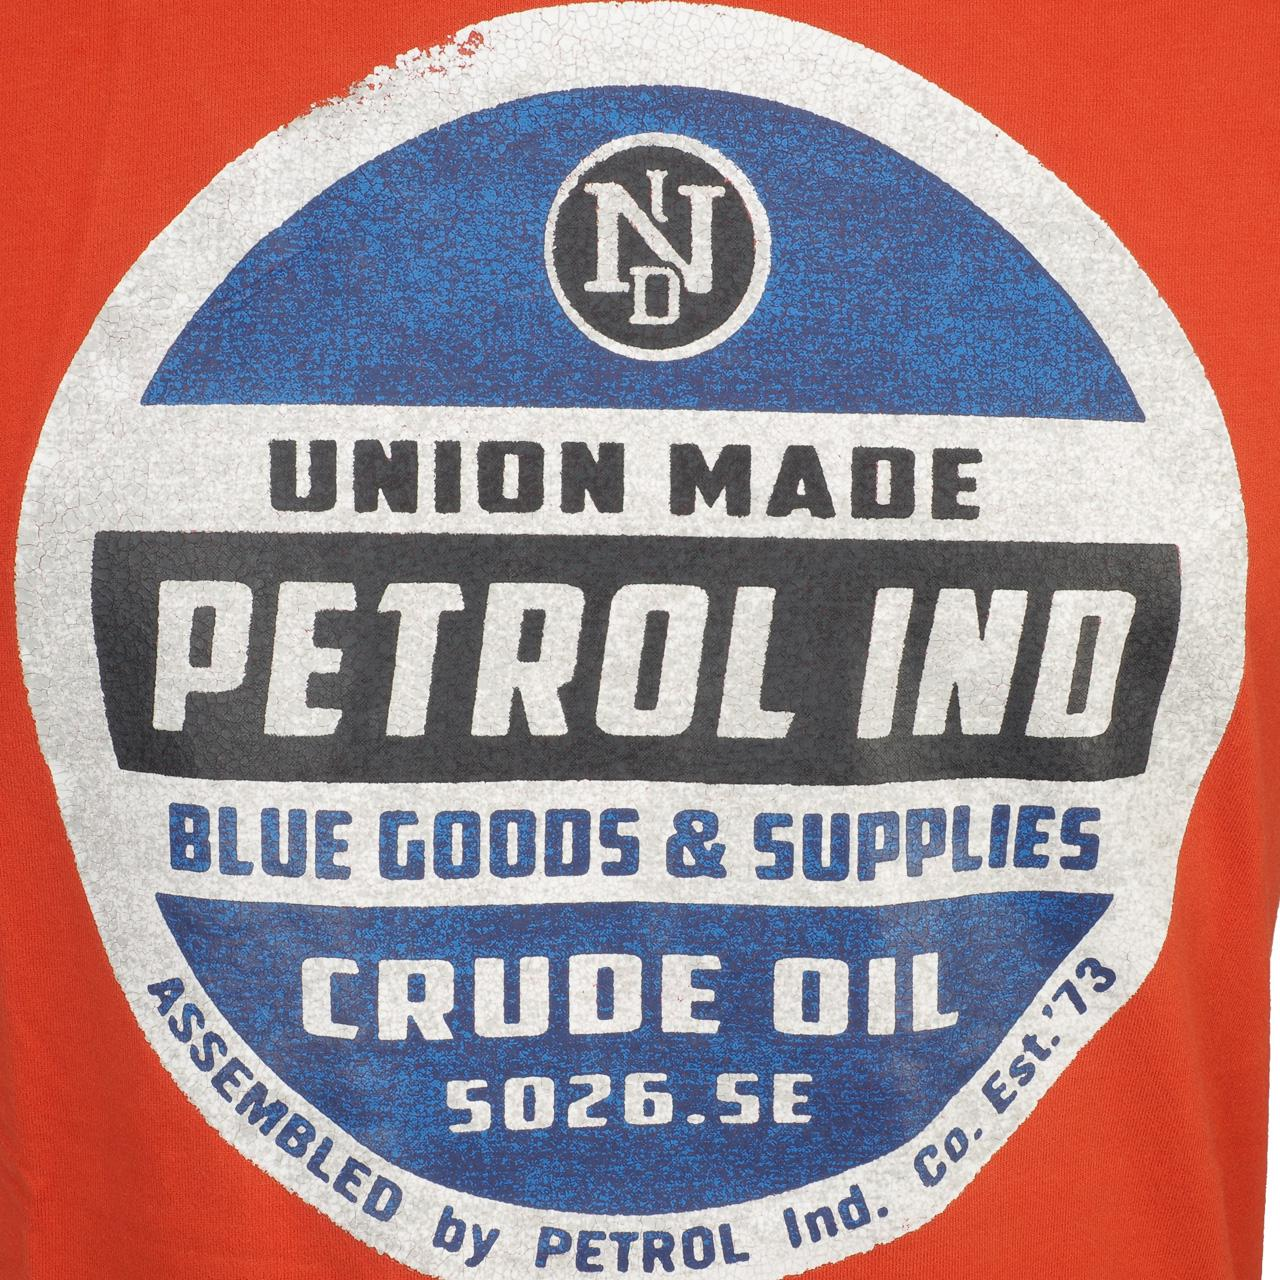 Short-Petrol-industries-Tsr607-Burnt-Orange-Mctee-Orange-137 thumbnail 2